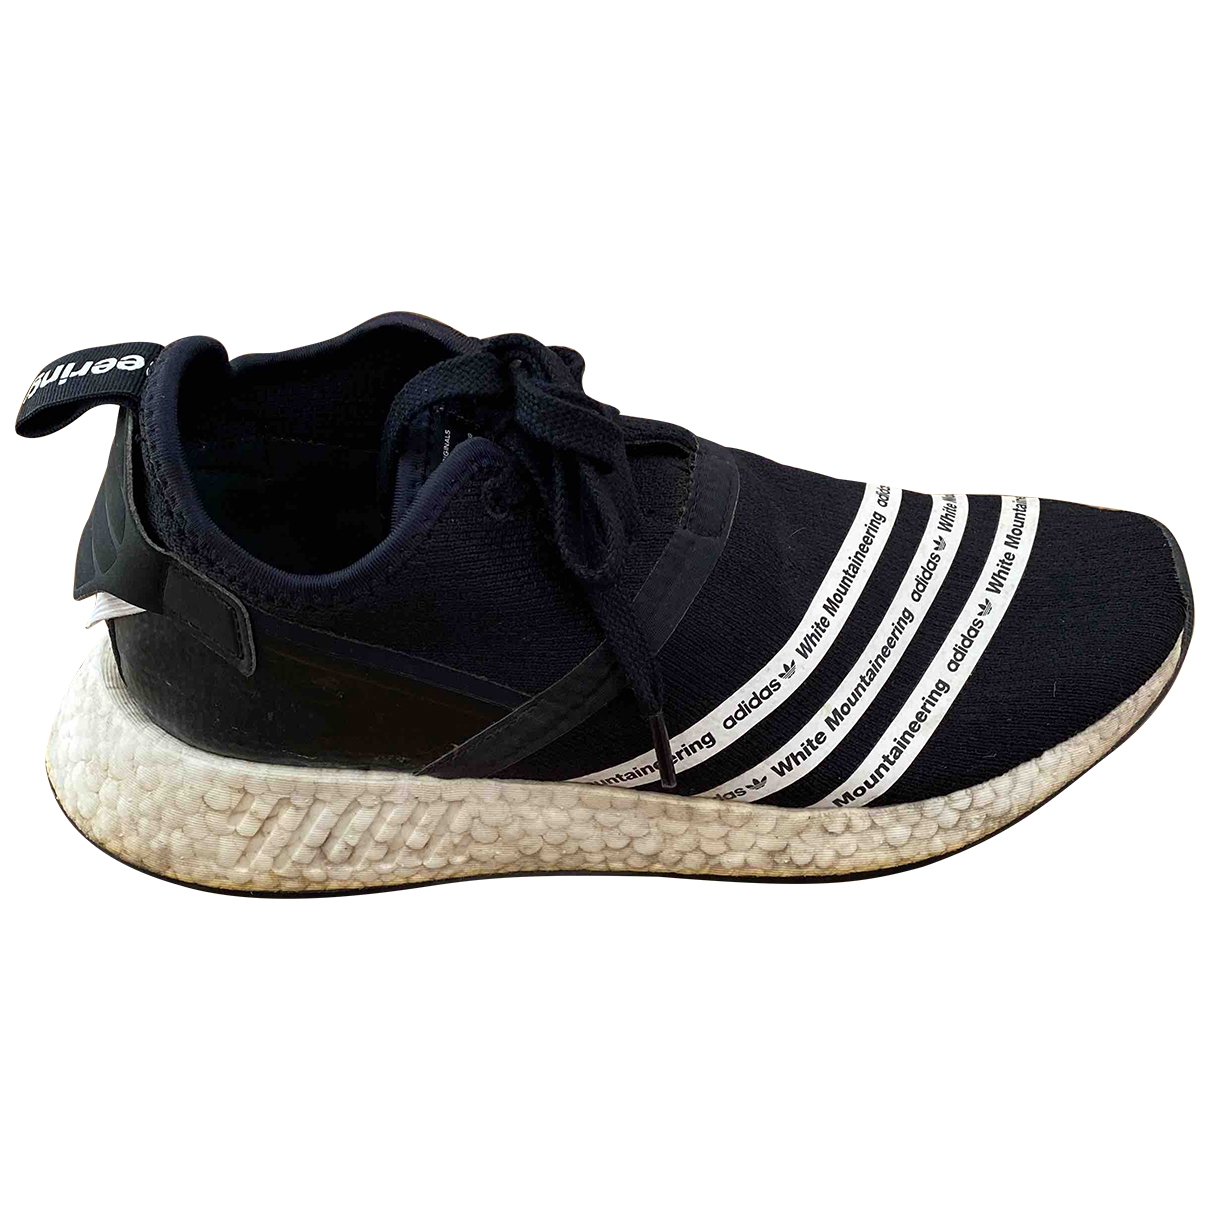 Adidas Nmd Sneakers in  Schwarz Polyester